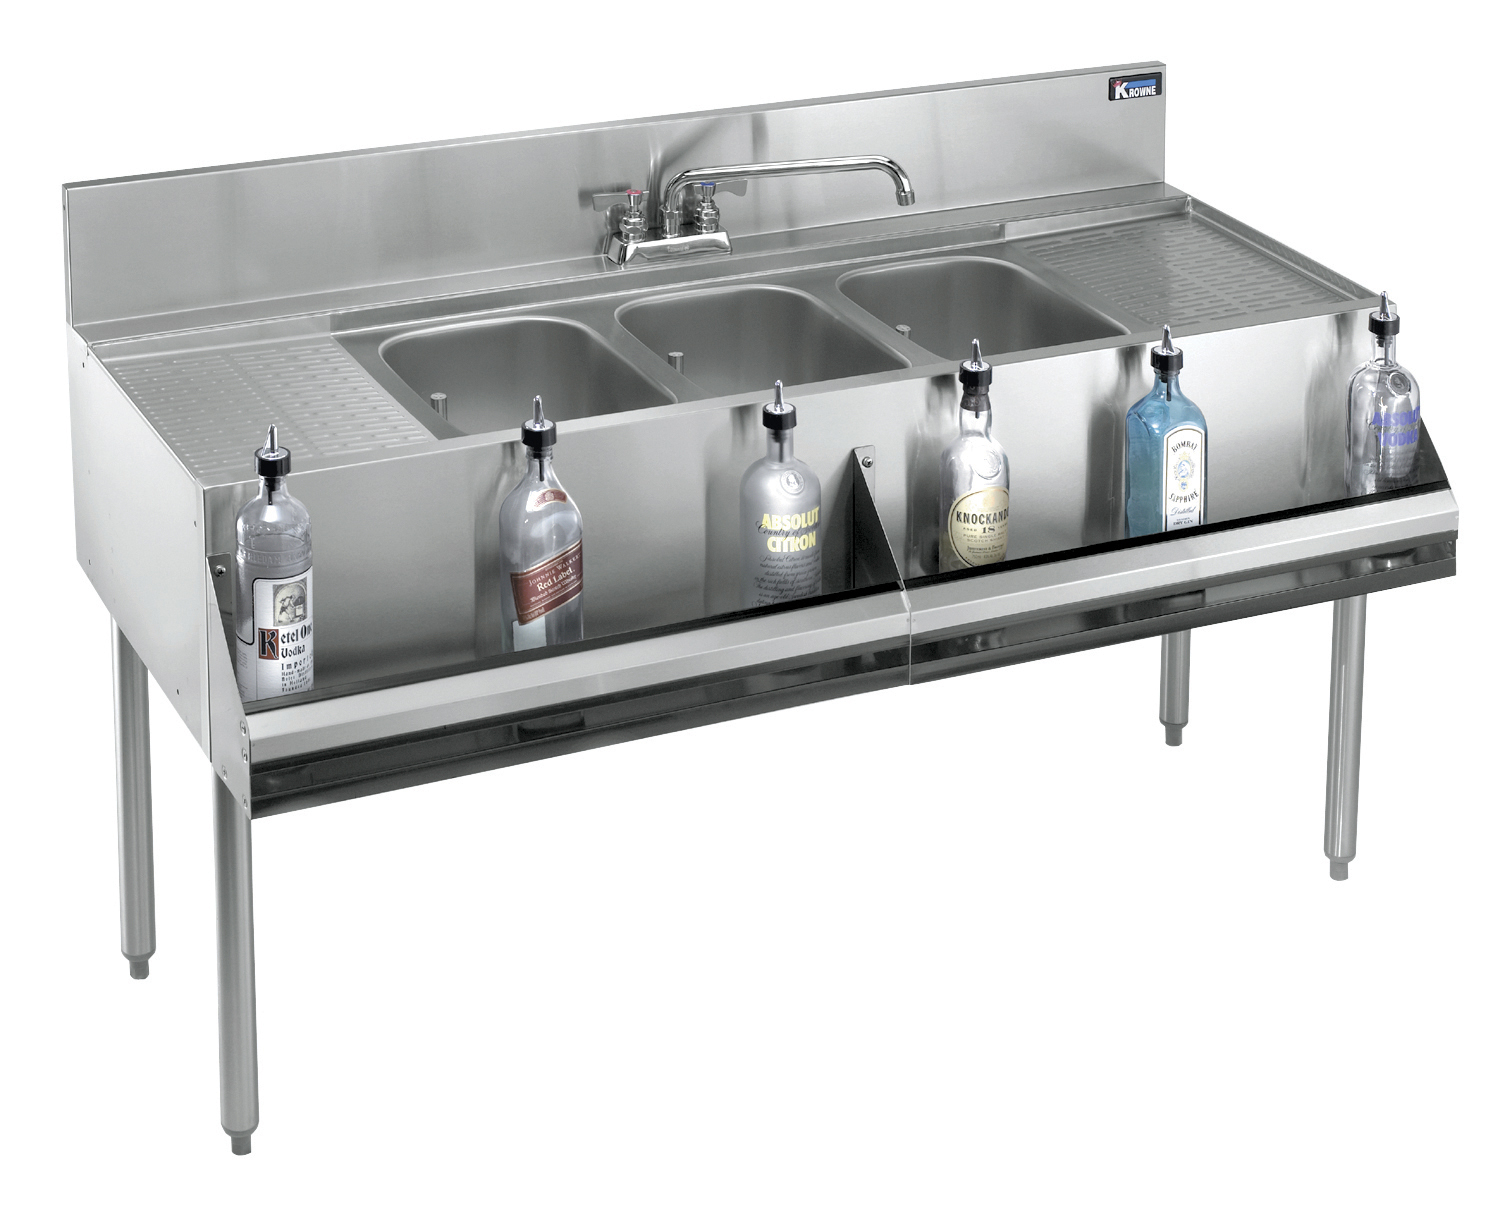 Krowne Metal KR21-53C underbar sink units